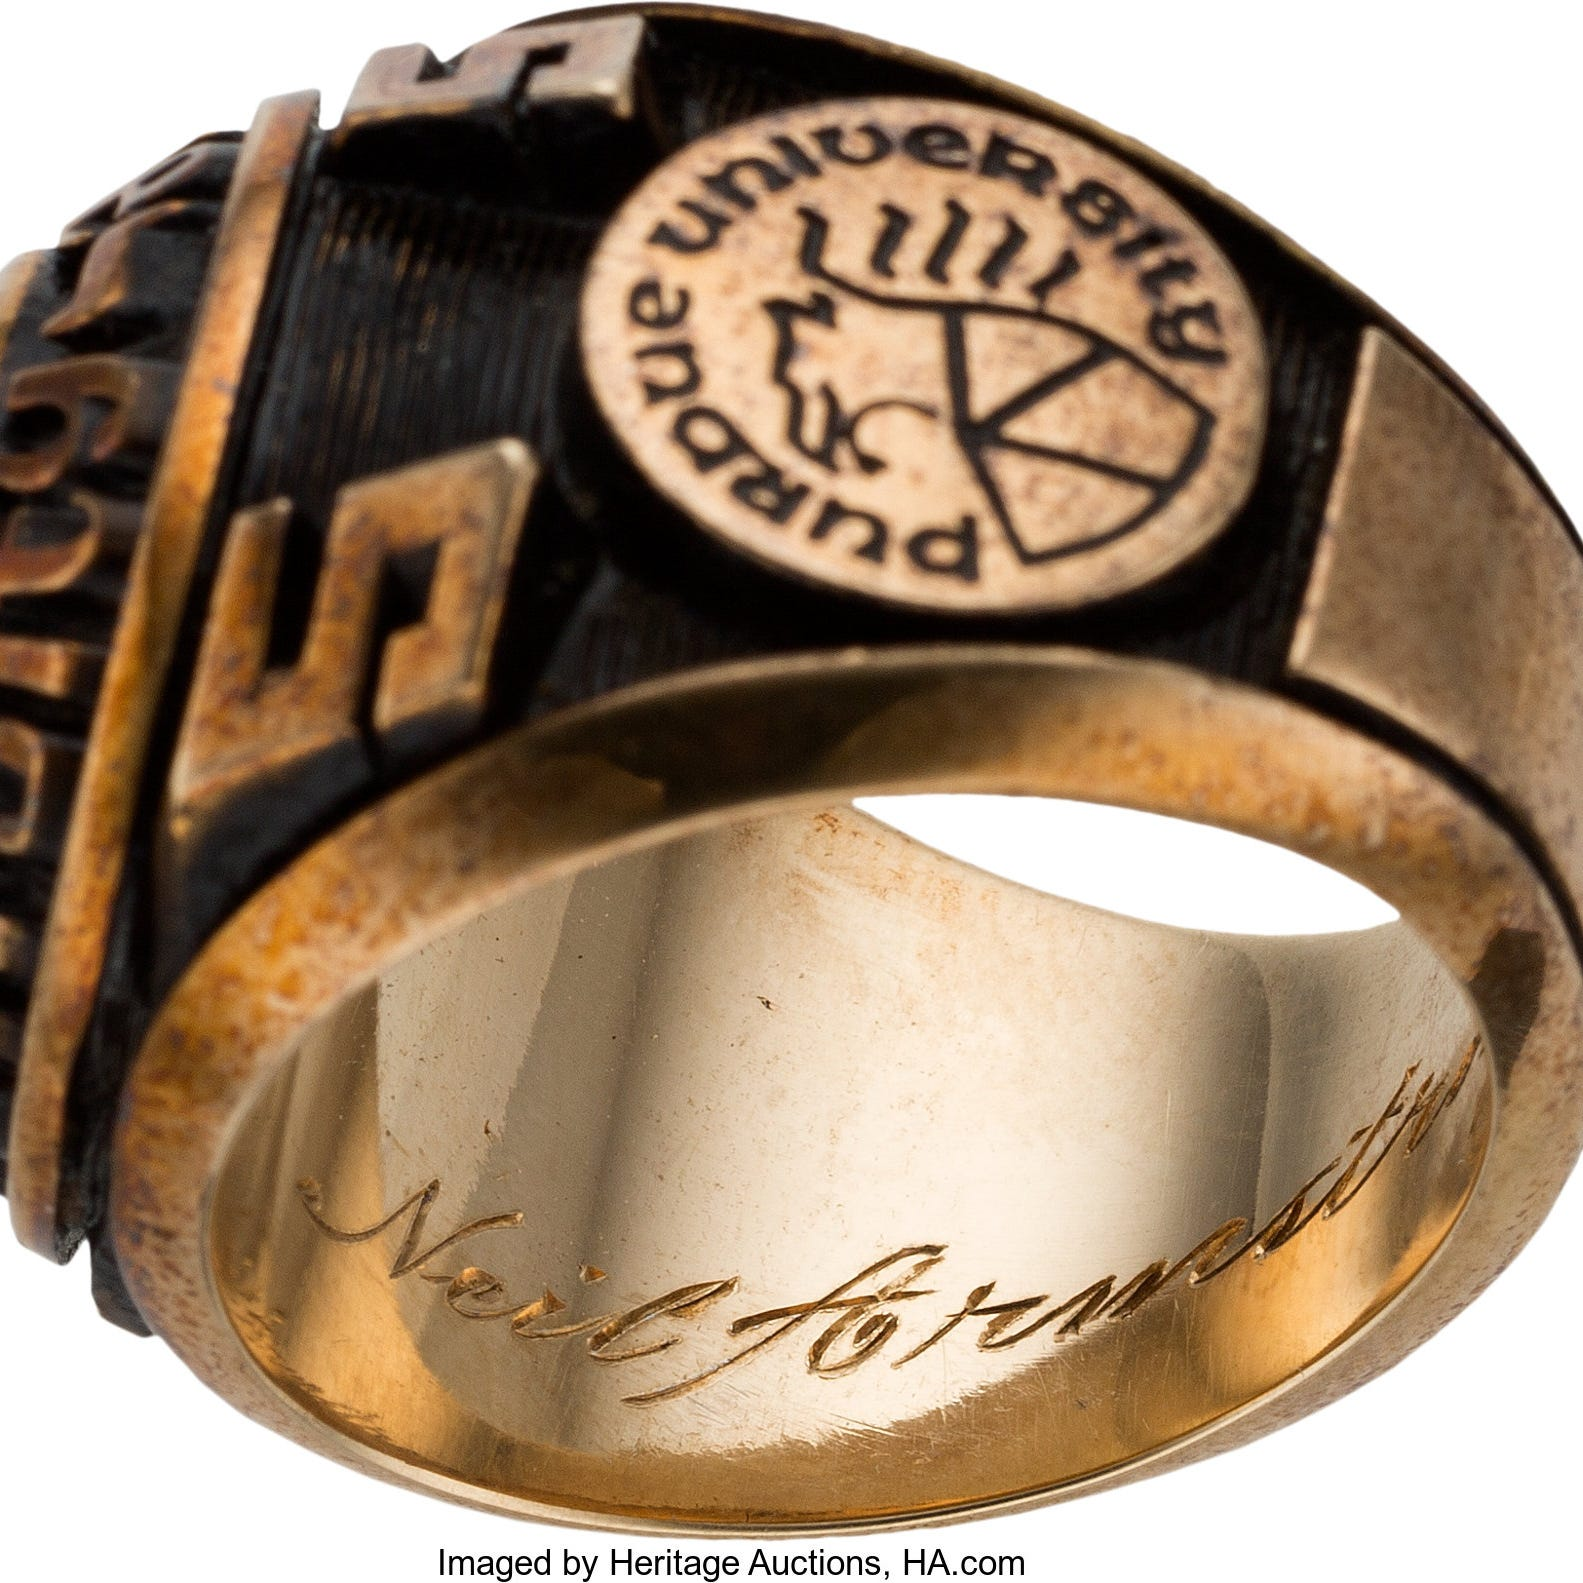 Neil Armstrong's Purdue class ring could be yours. Starting bid: $12,500